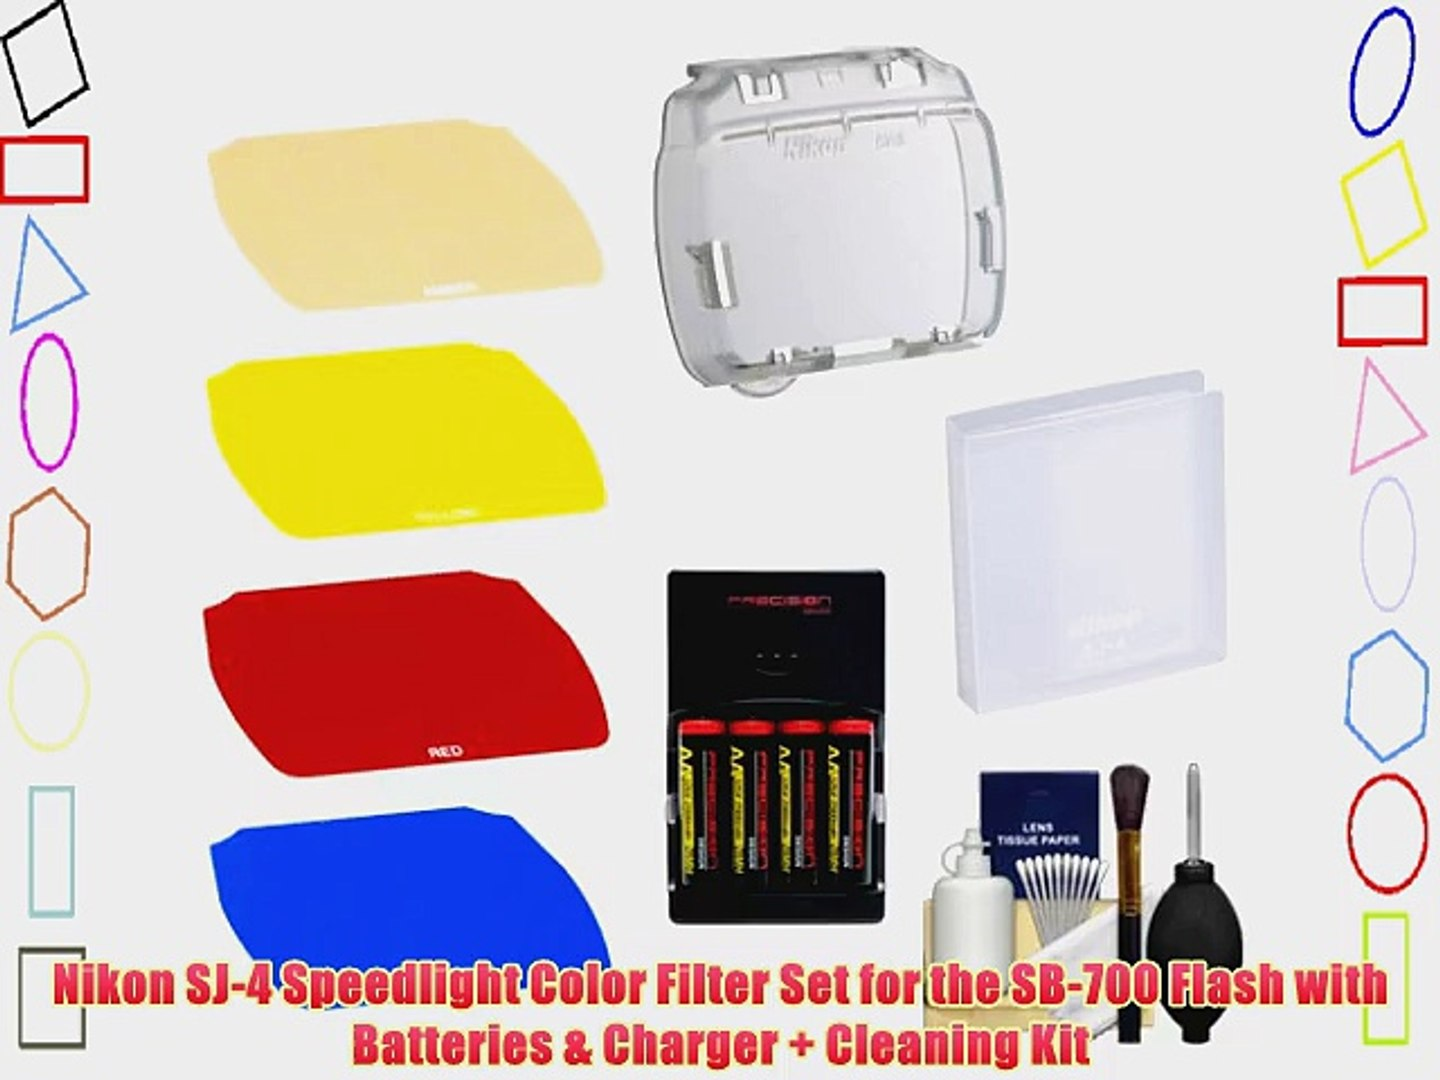 Nikon SJ-4 Speedlight Color Filter Set for the SB-700 Flash with Batteries